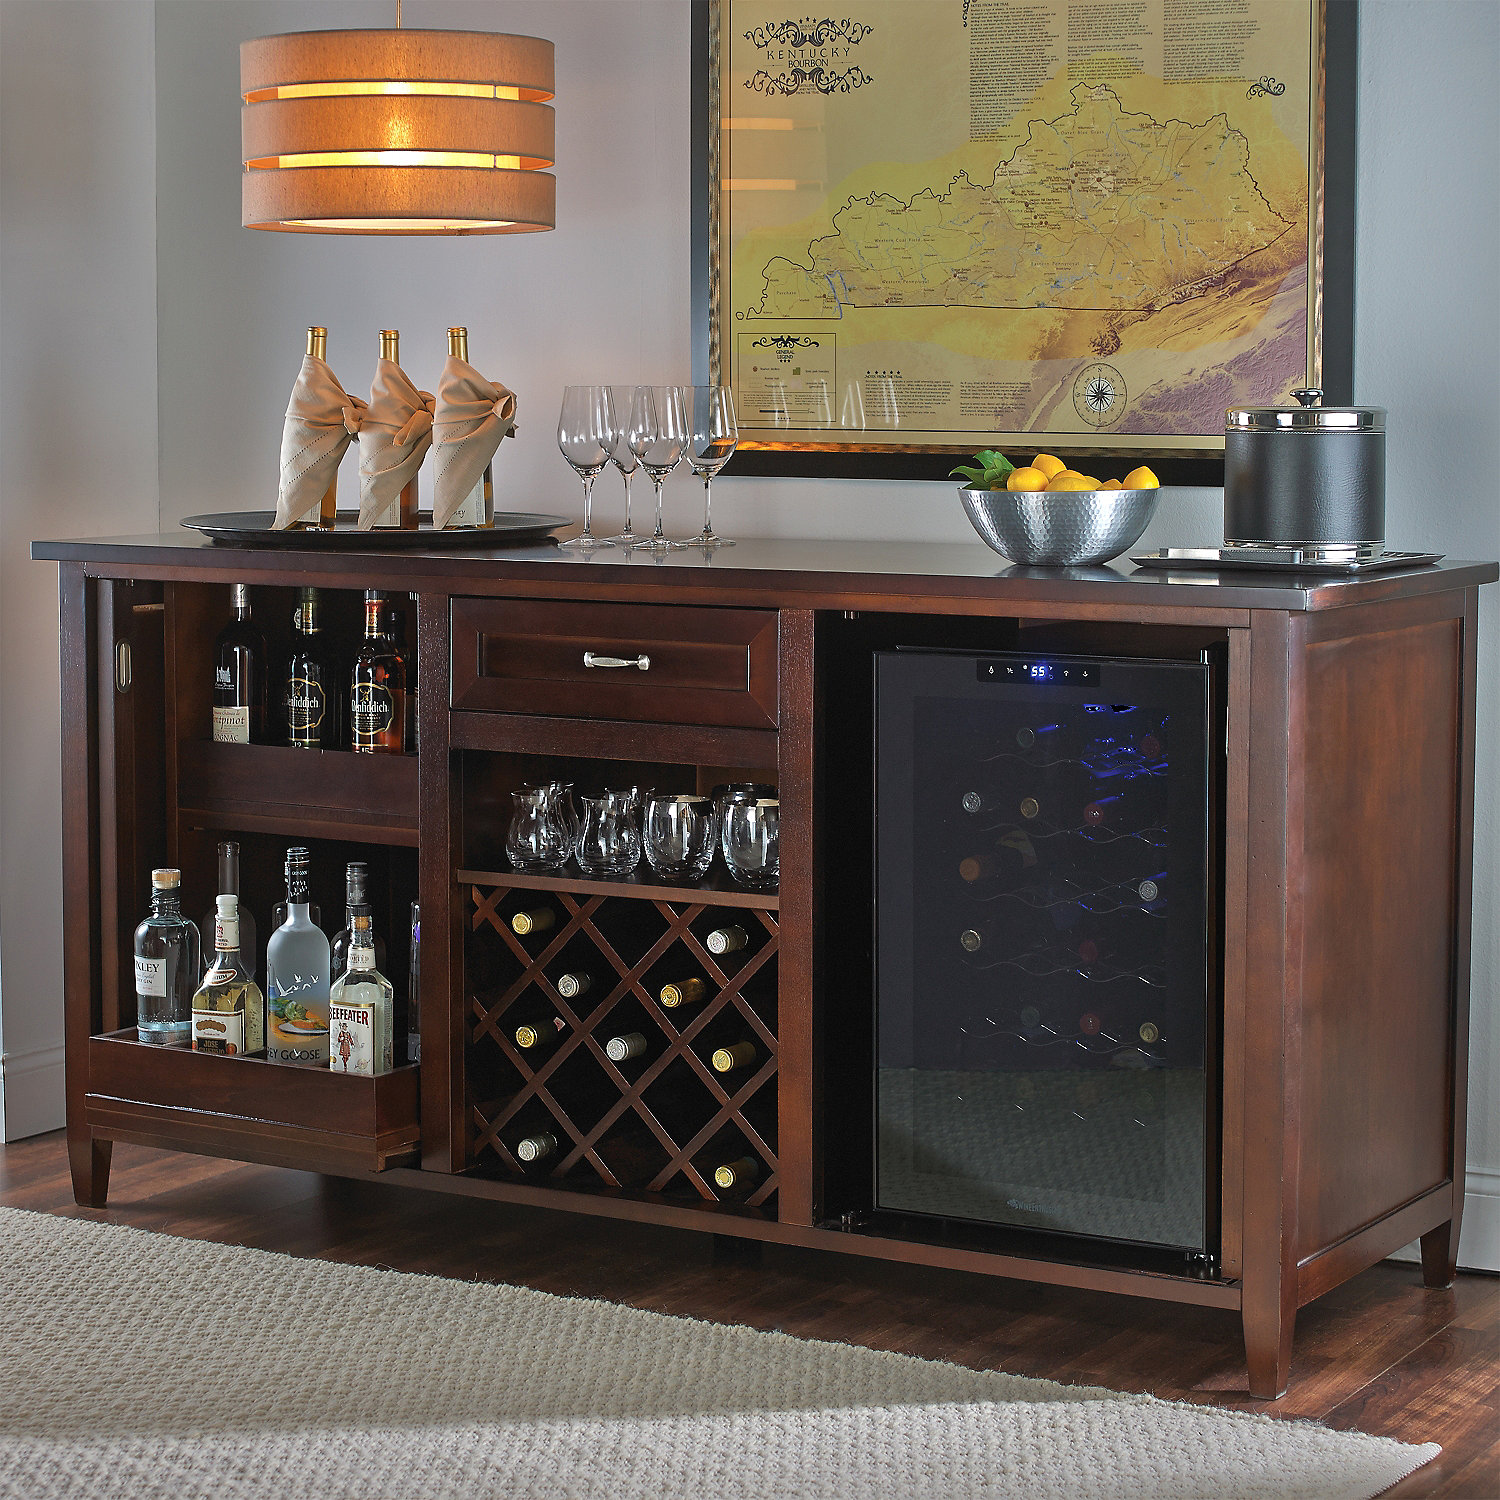 Large Wine Cabinets Furniture Wooden Shelves Furnishing Cabinet